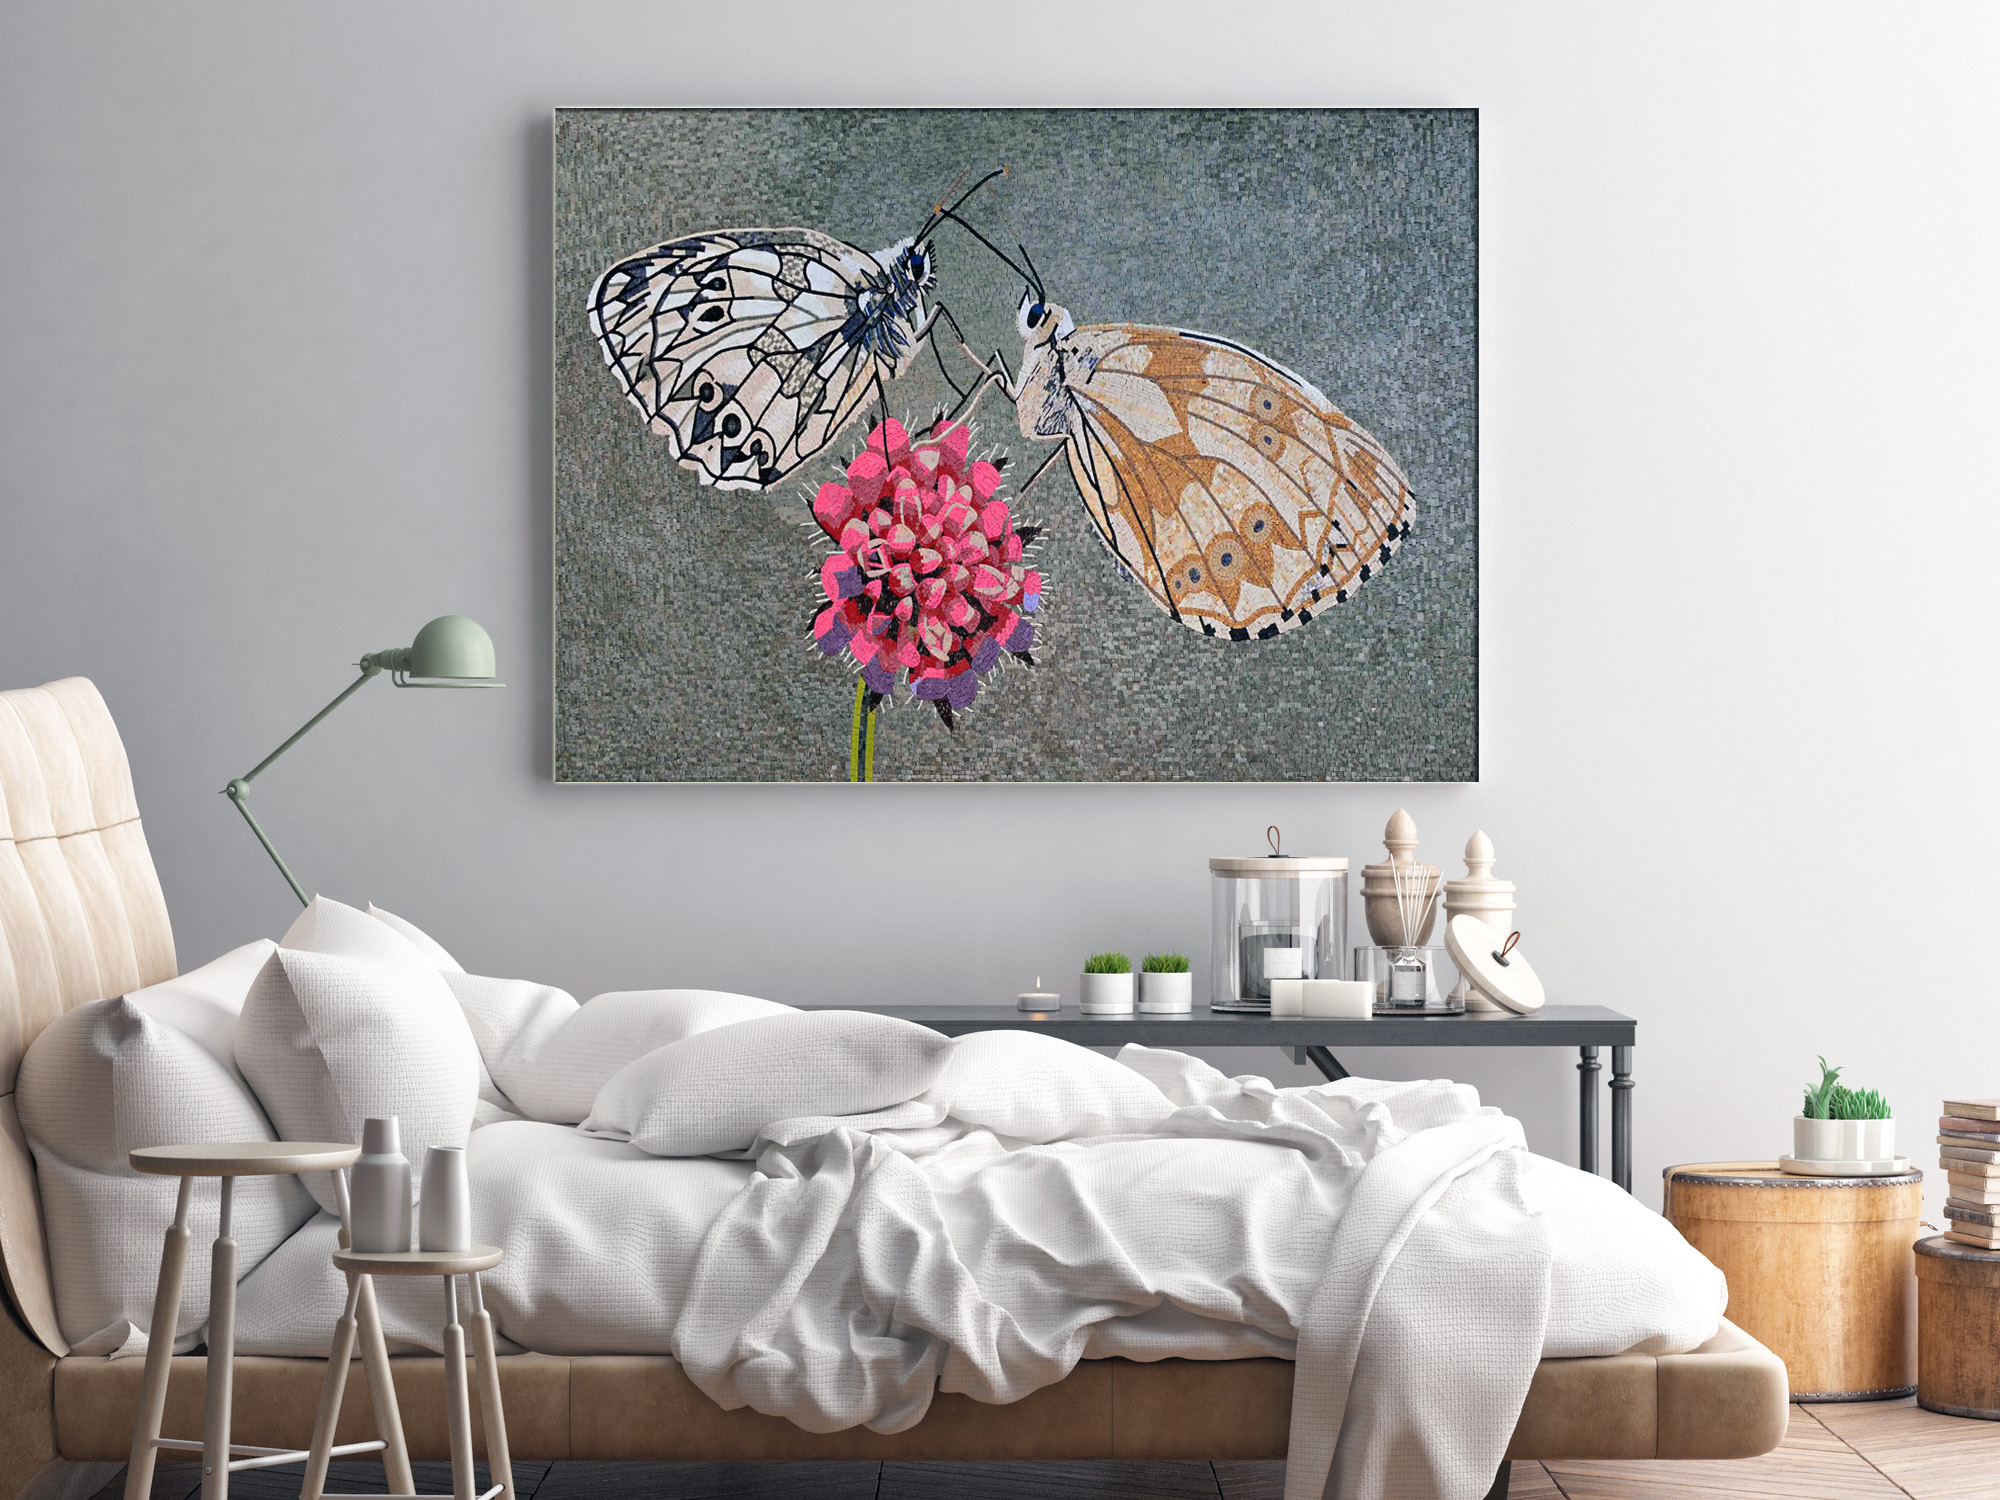 mosaic-art-in-bedroom-butterfly